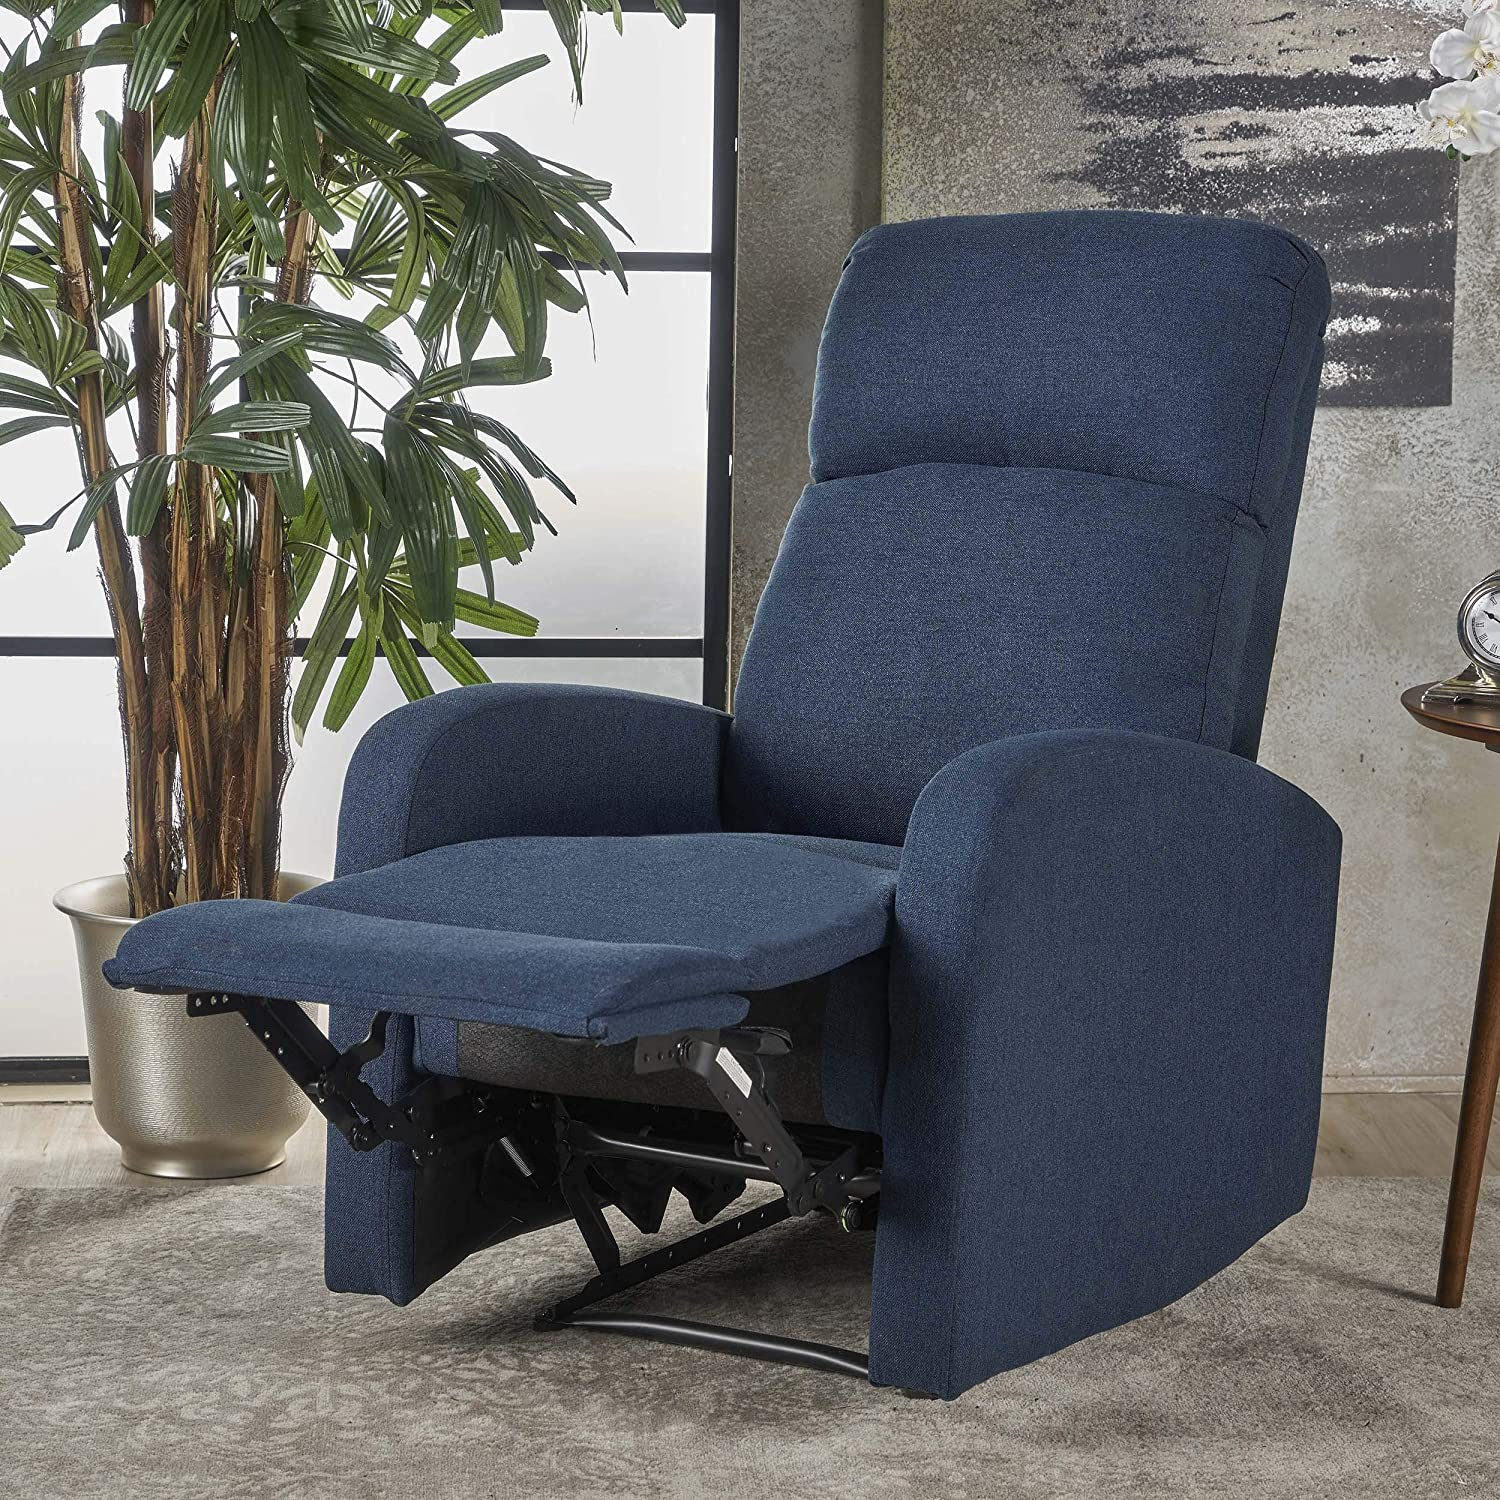 Christopher Knight Home 301401 Giovanni Recliner, Navy Blue